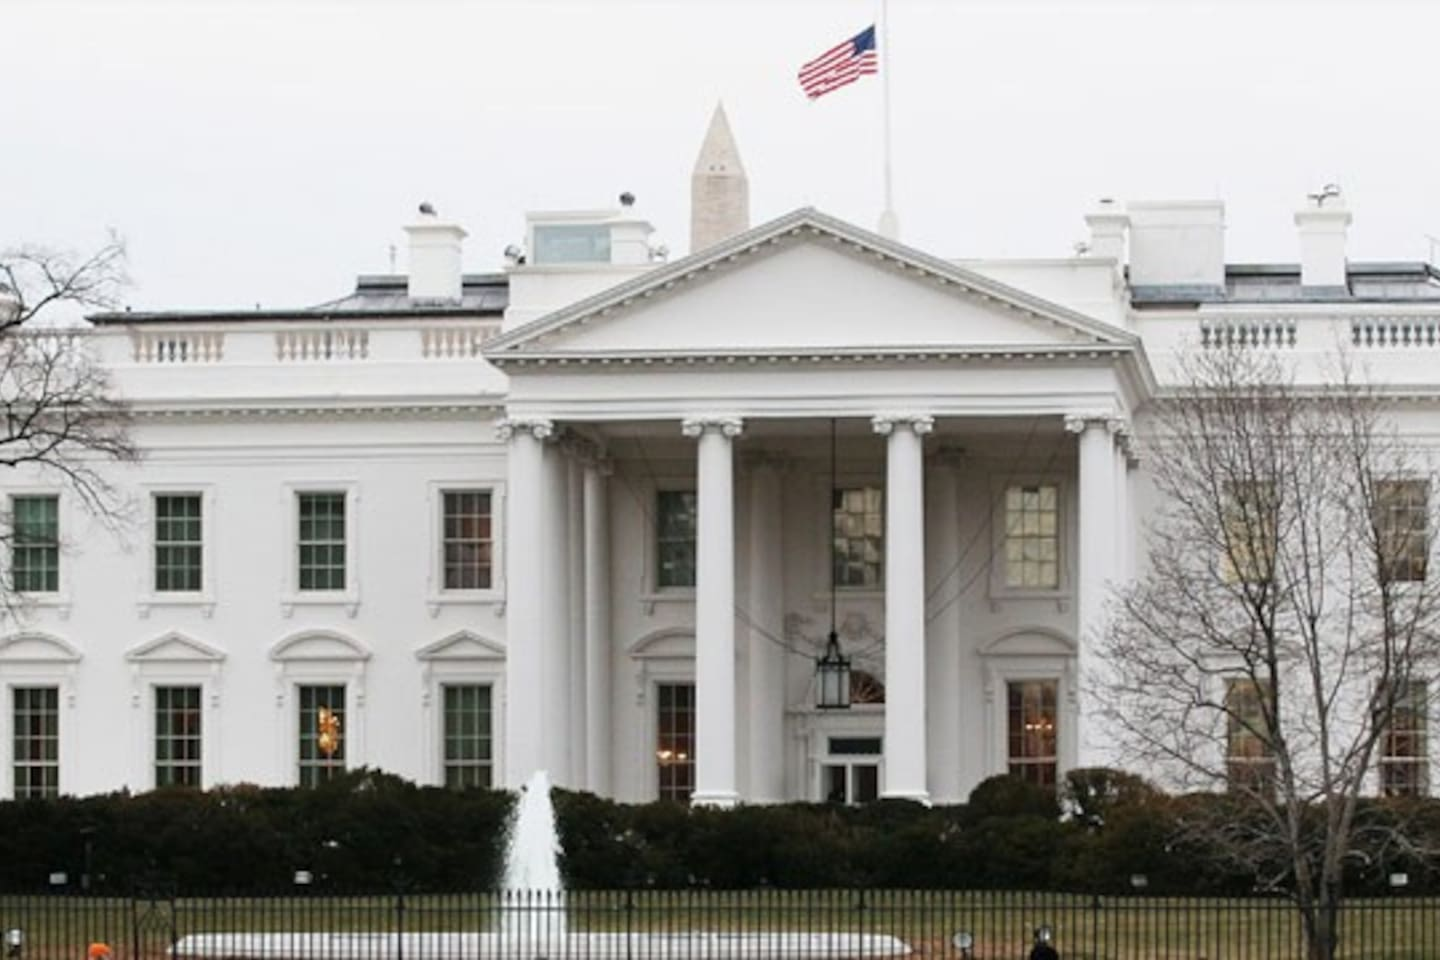 The White House is the top attraction.